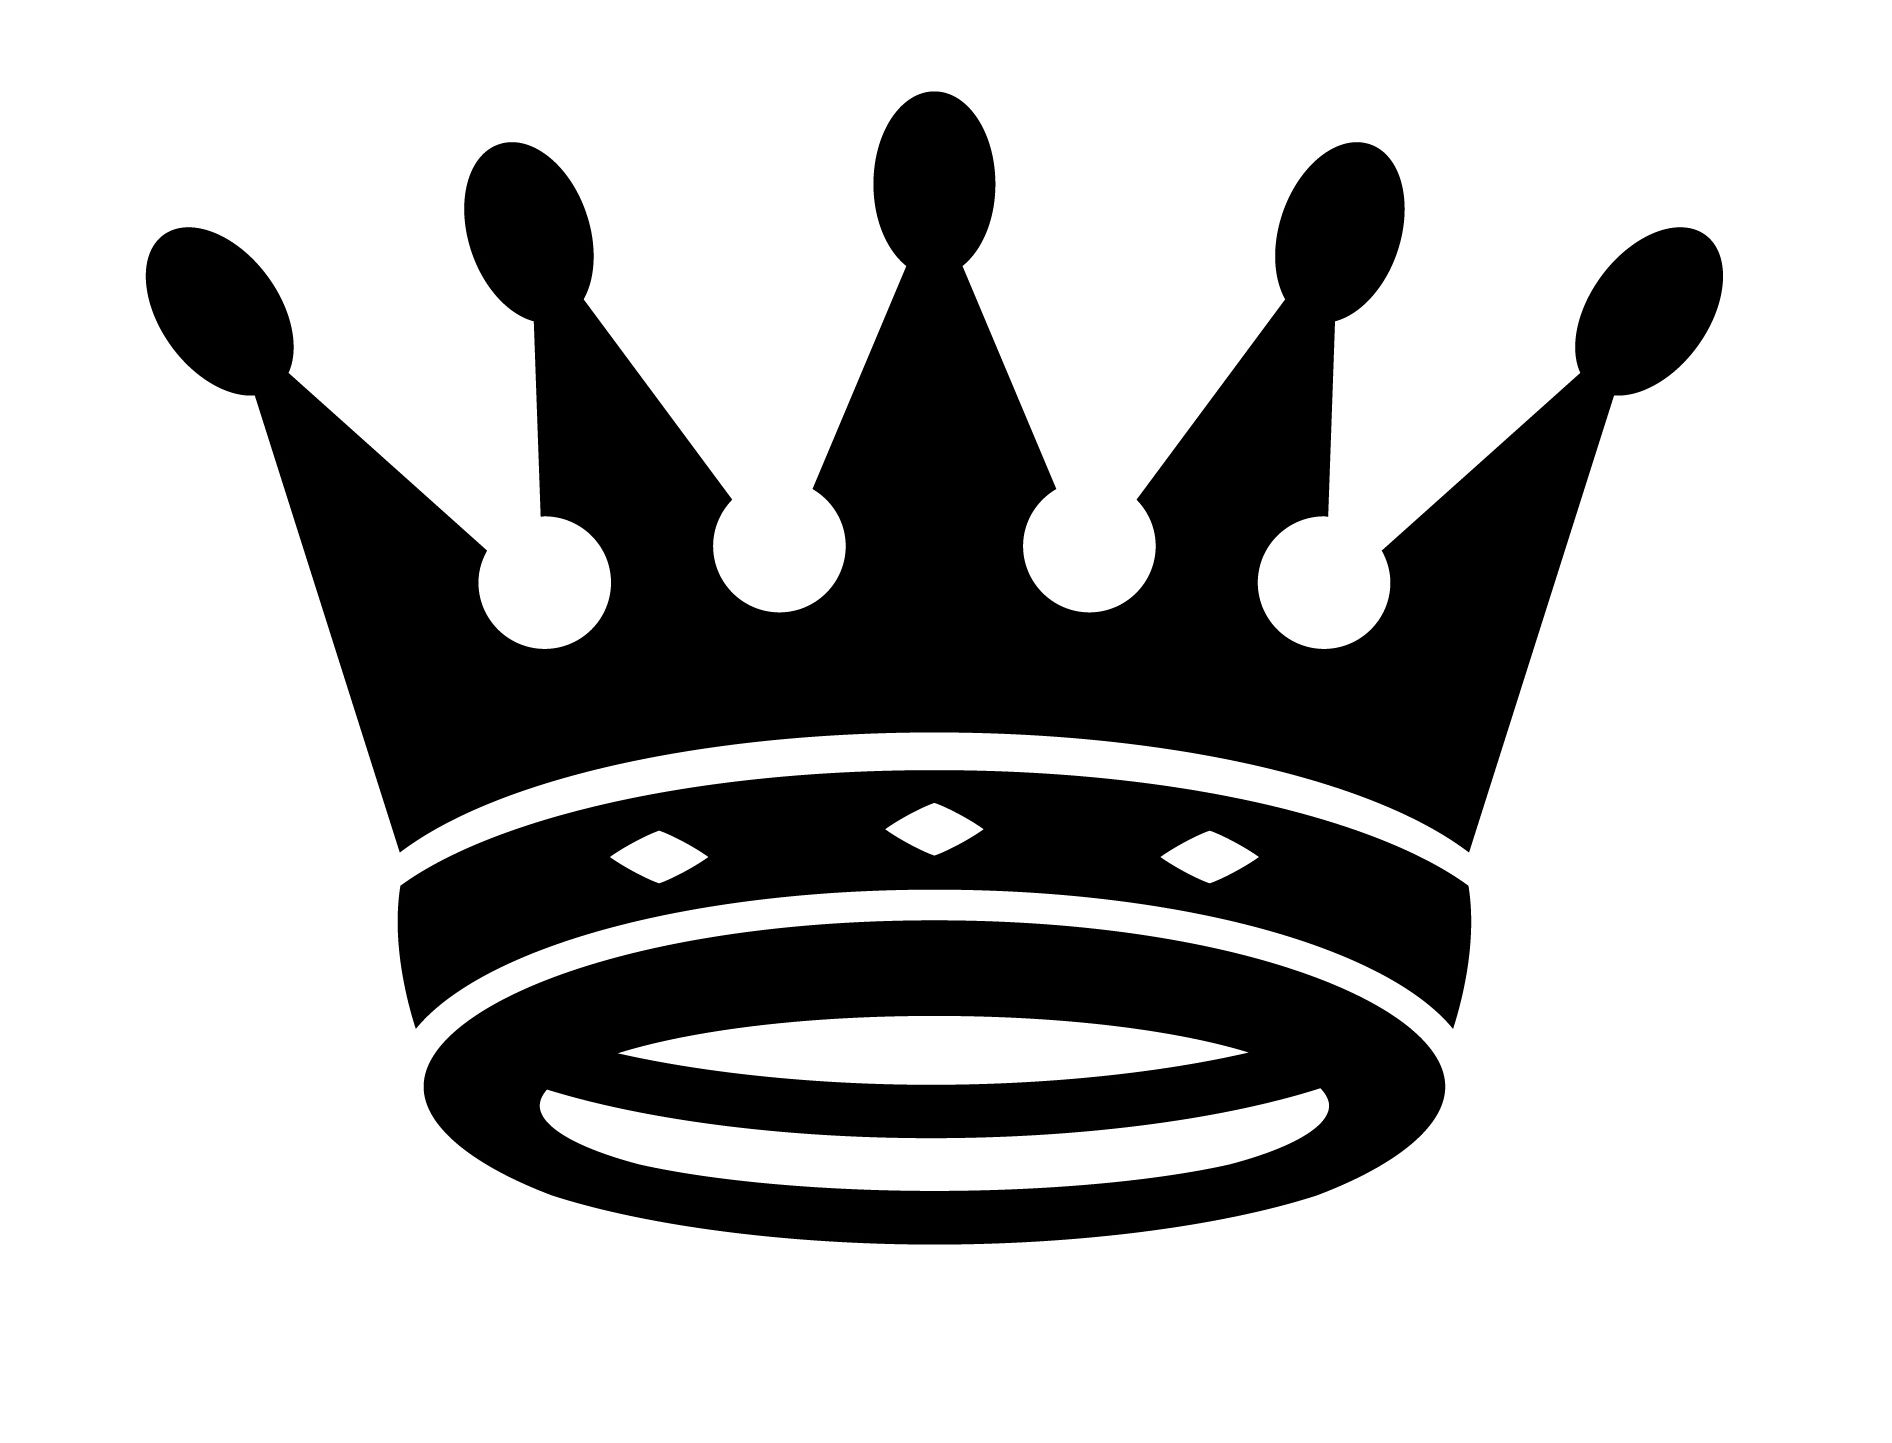 Queen crown crown king and queen clip art cliparts and.